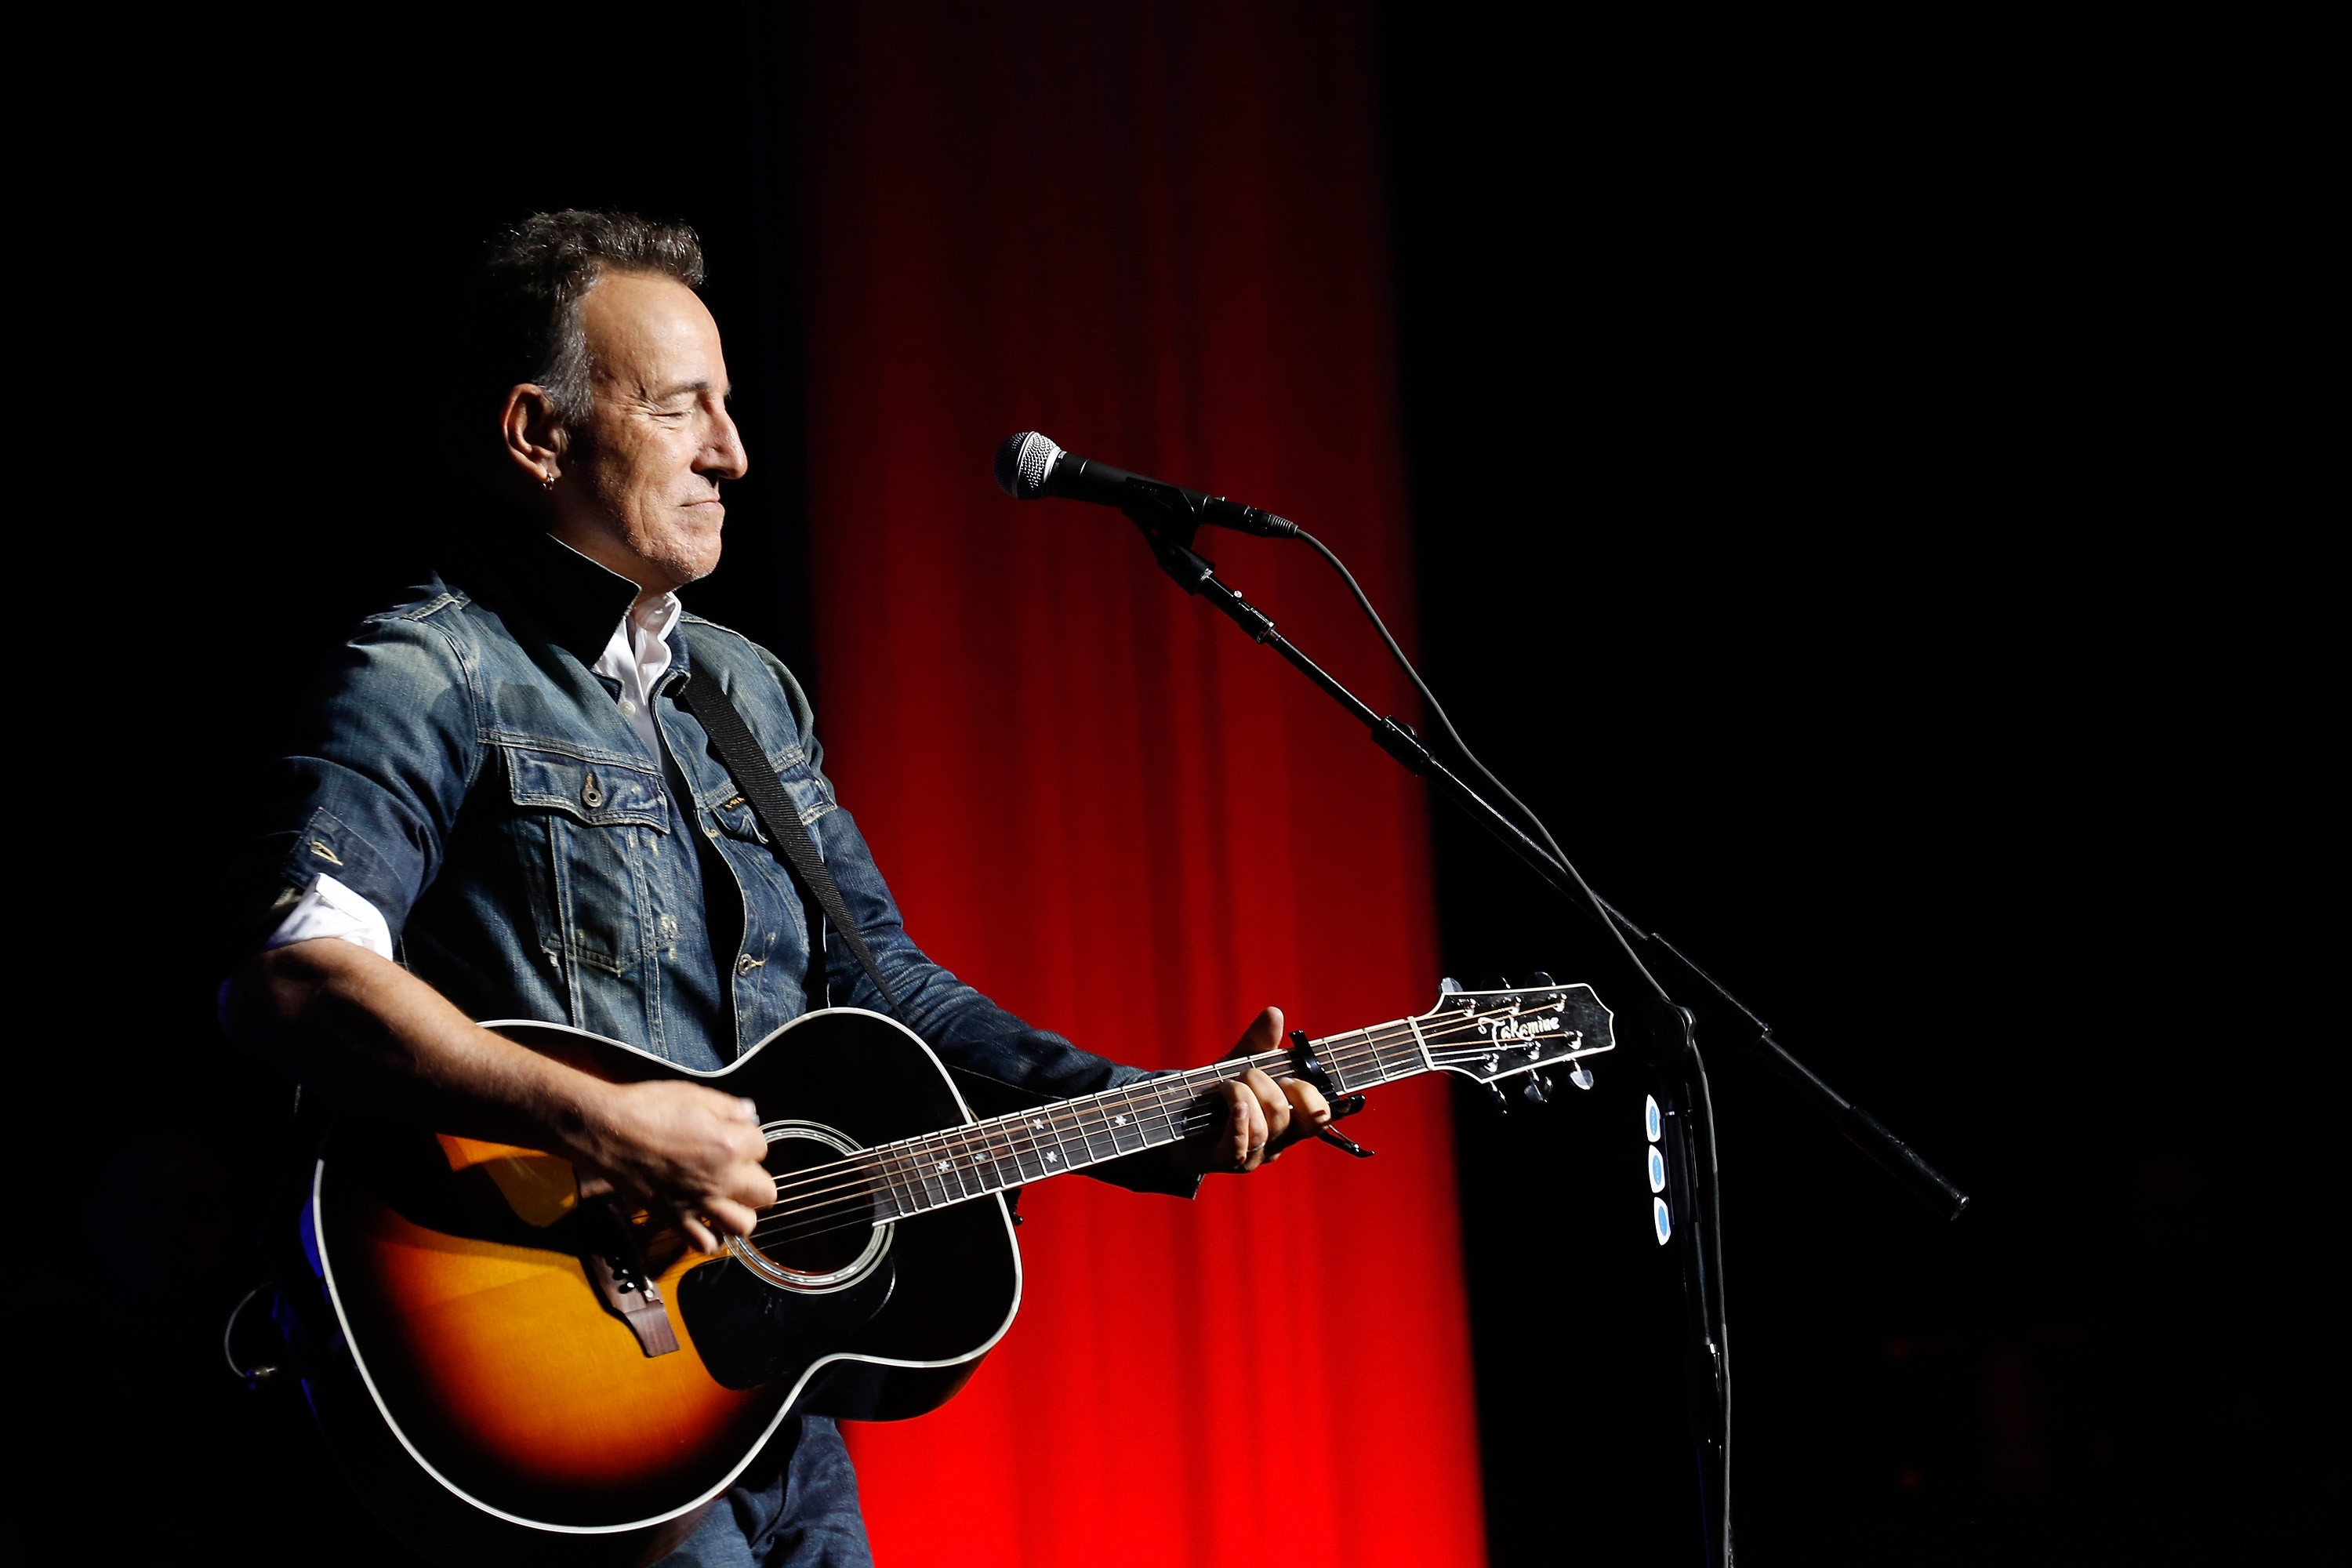 O músico Bruce Springsteen (Foto: Getty Images)